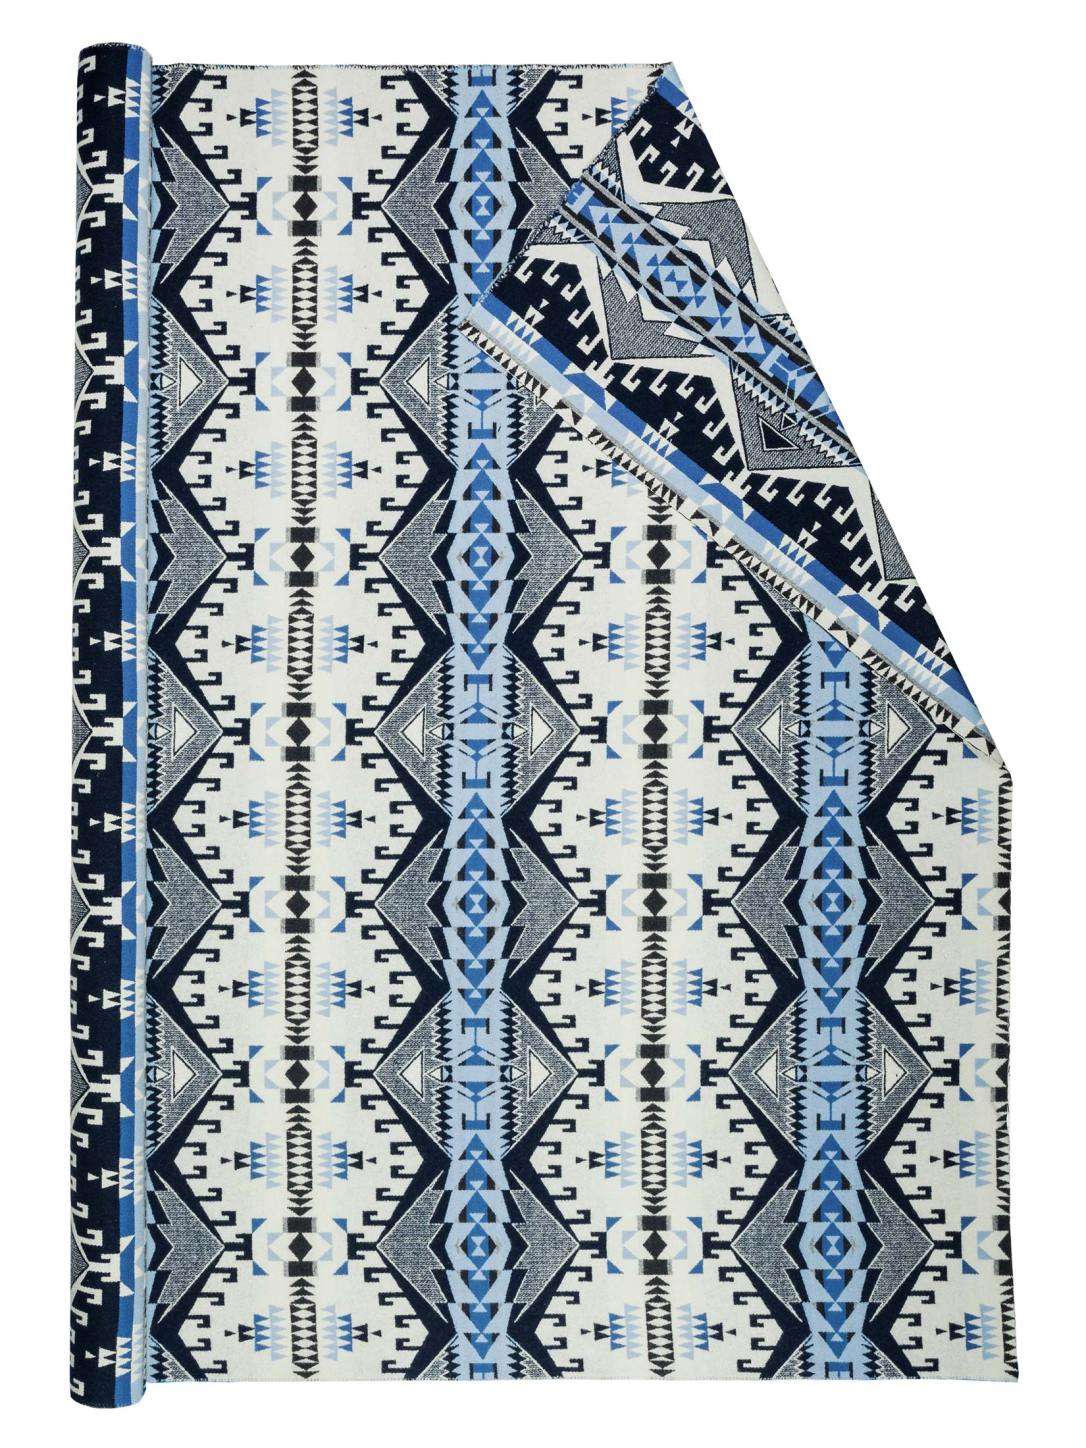 A roll of Pendleton wool fabric in Trailhead Blue, a white fabric background with a large pattern of light blue, dark blue, and black, interwoven diamond shapes with small hooks.